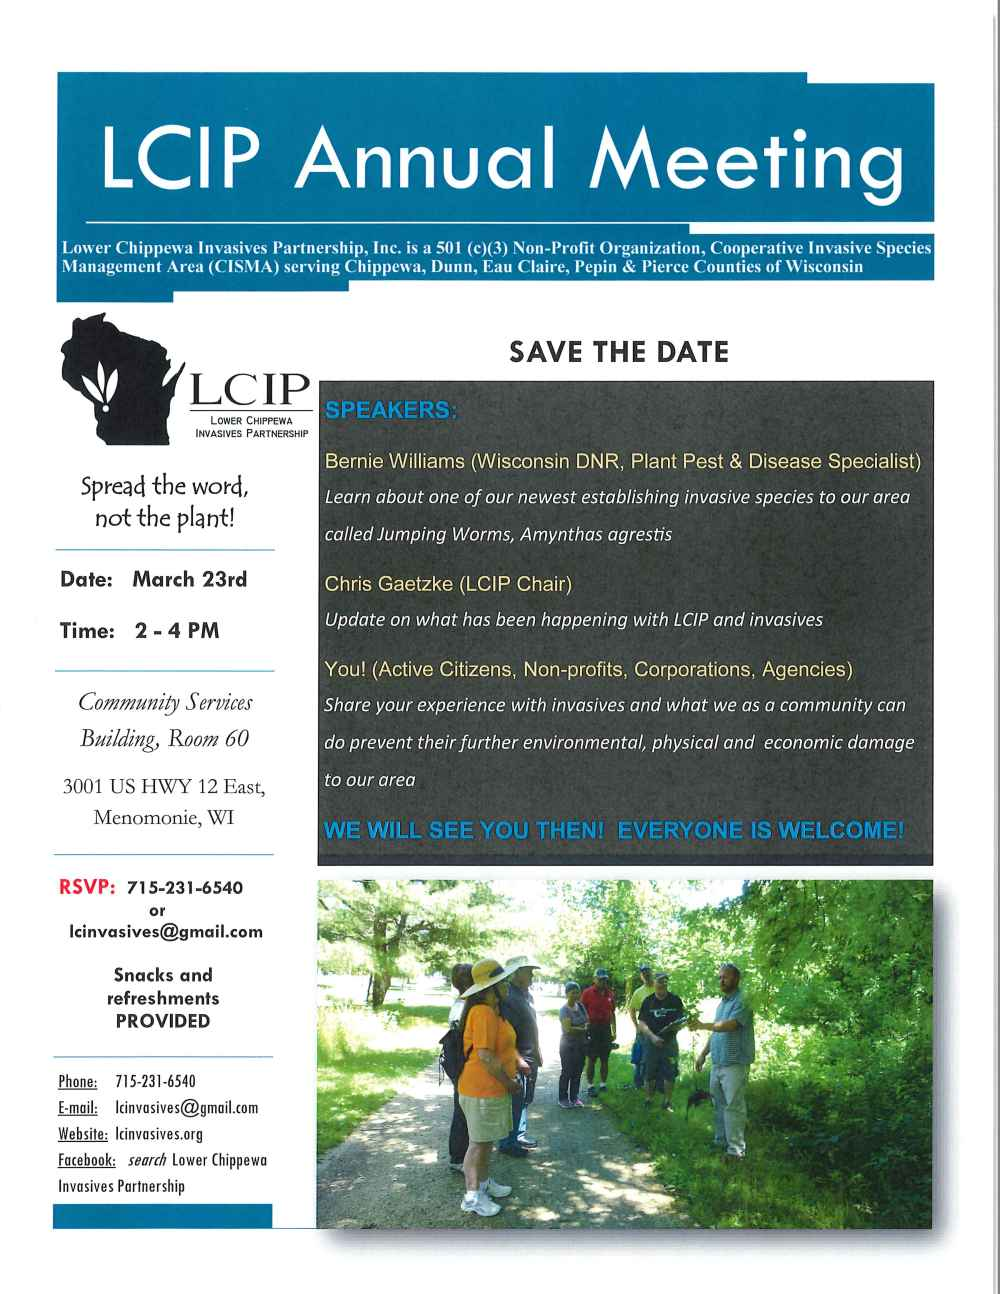 LCIP Annual Meeting JPEG